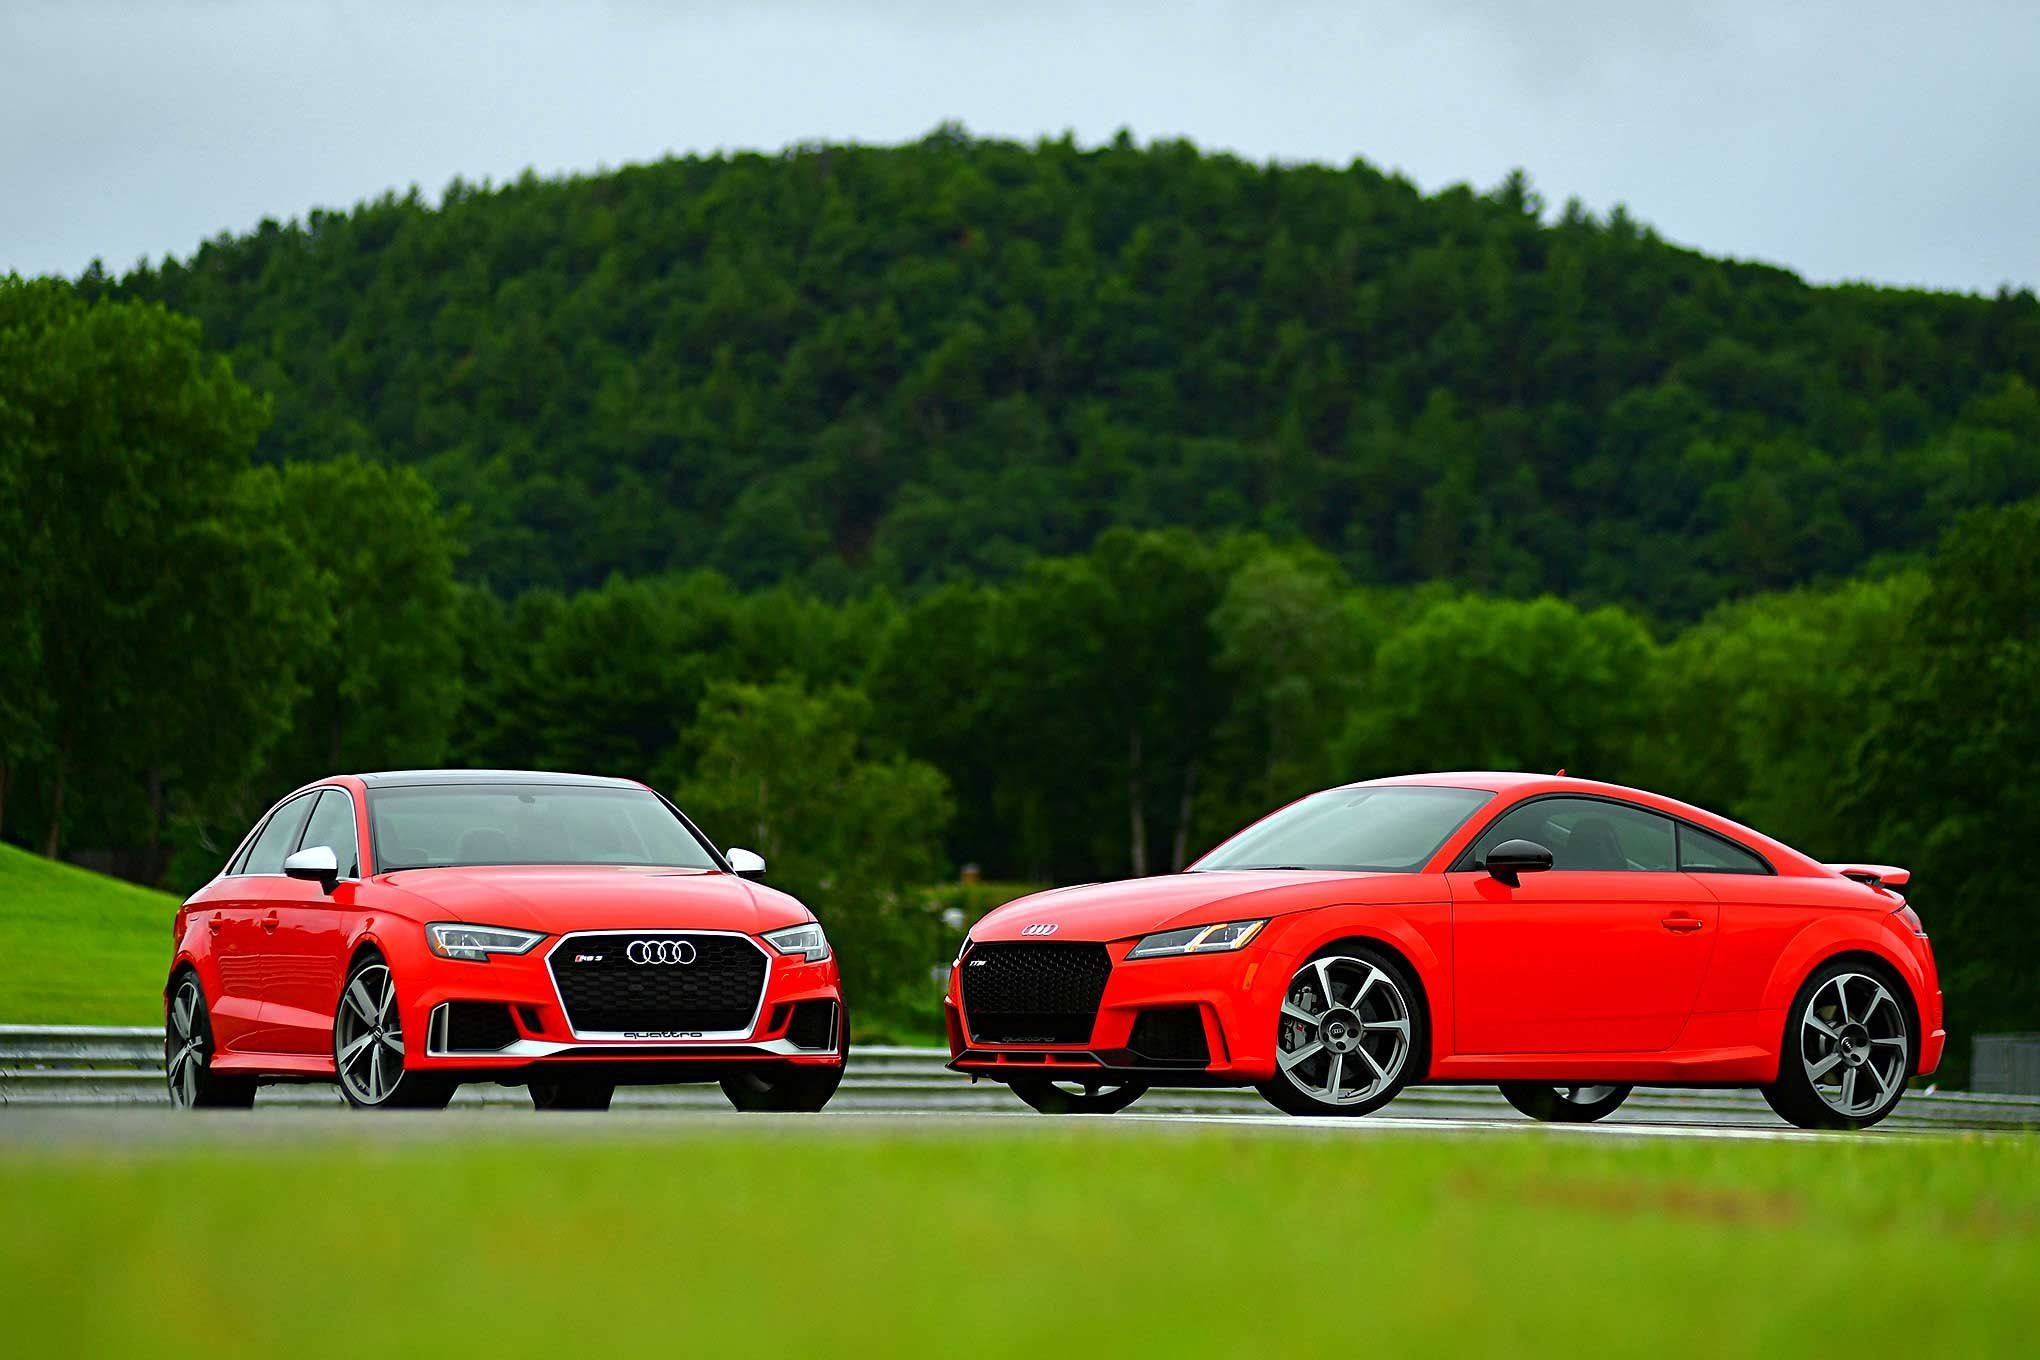 Five Cylinder Frenzy 2018 Audi RS3 & TT RS